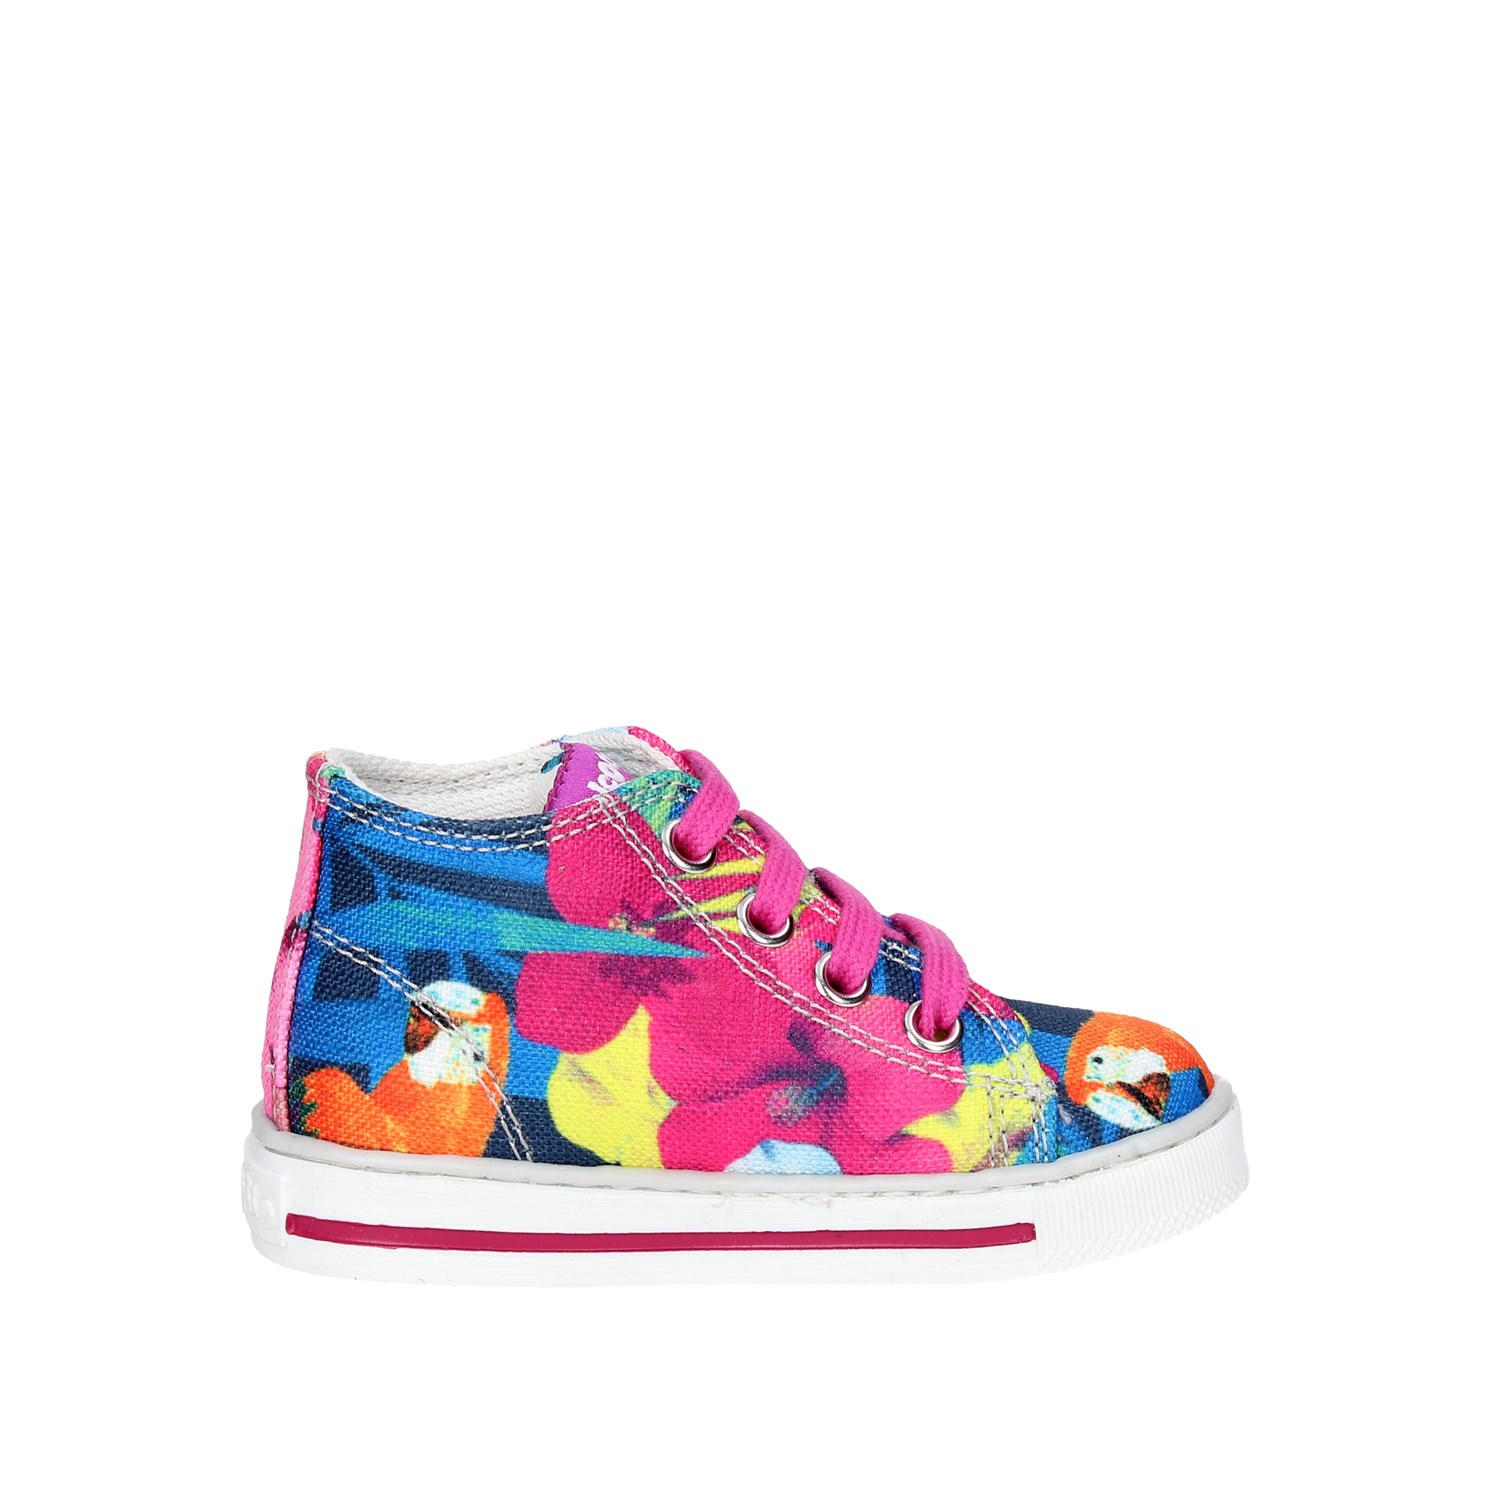 Girl 0012010916 09 Falcotto Baskets multicolores Alta Été 9181 Printemps wdYqqx7A